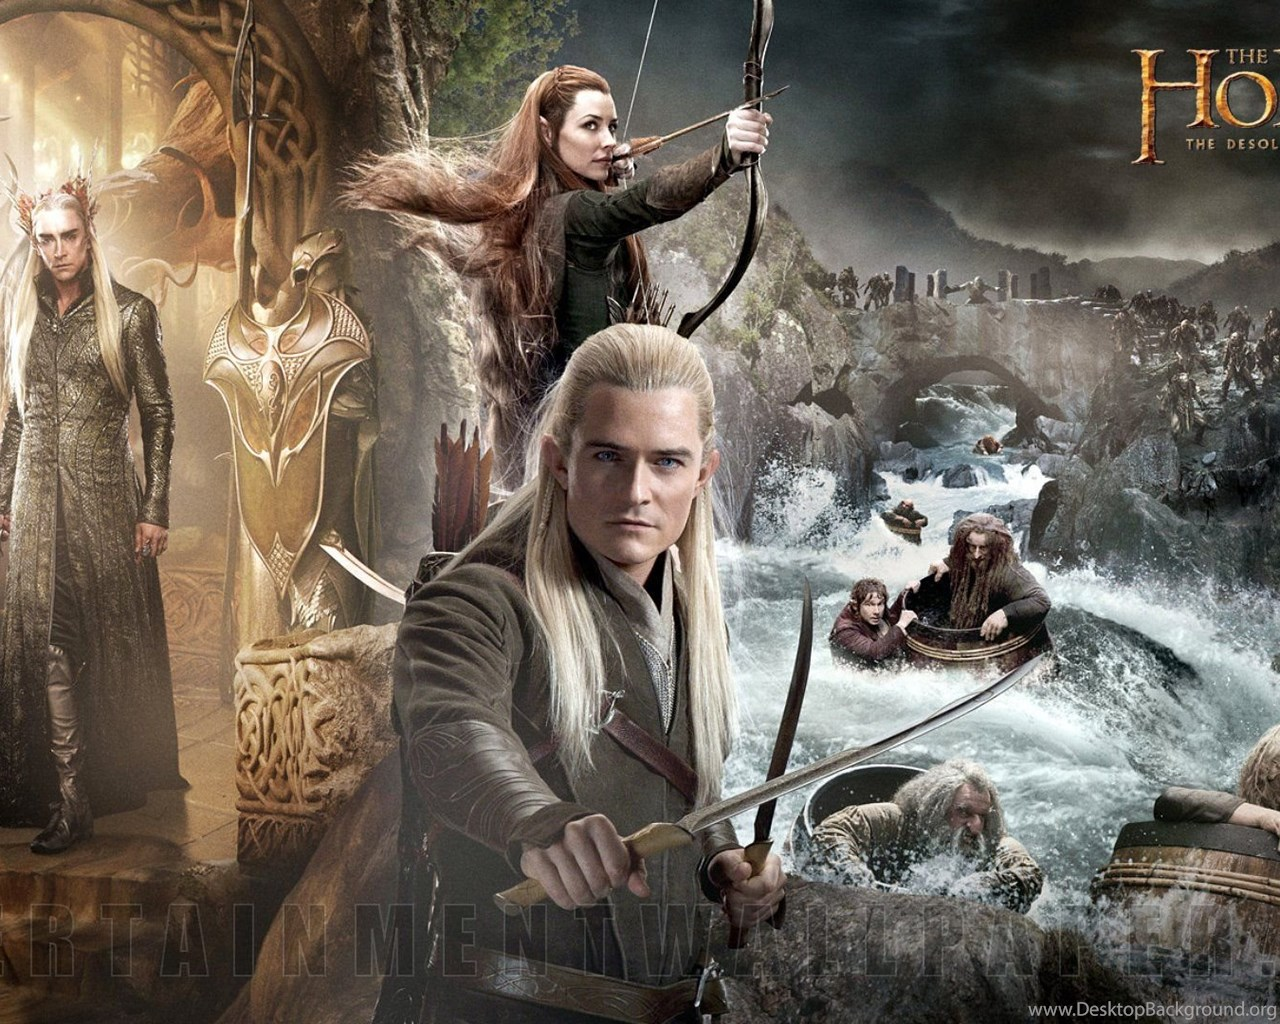 The Hobbit The Desolation of Smaug is a film the second part of The Hobbit film series It was released on December 13 2013 and grossed over960 million worldwide